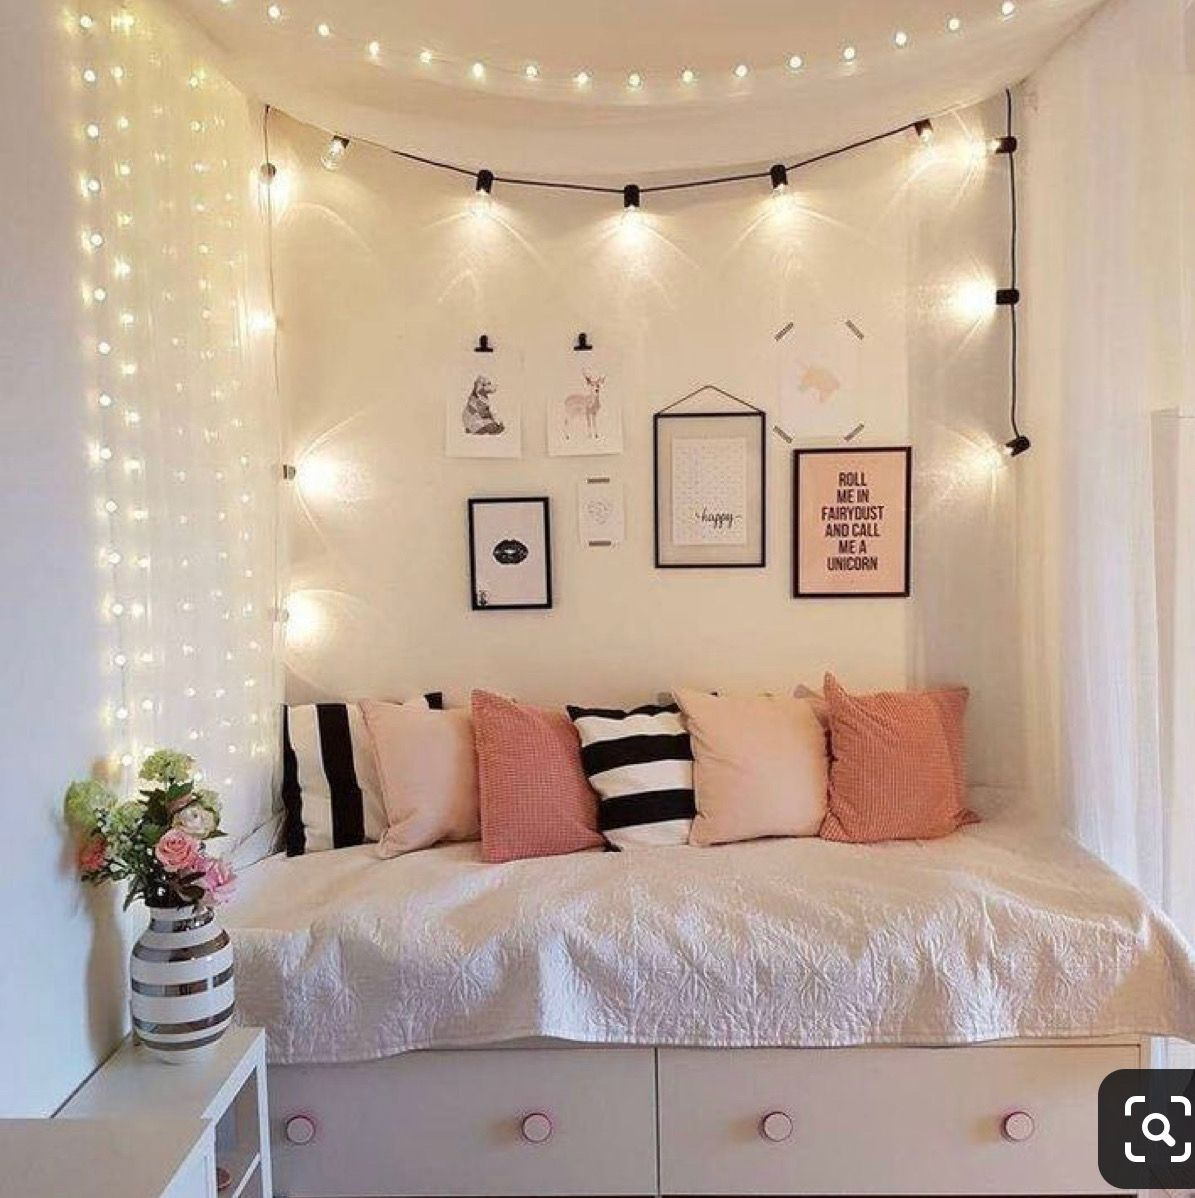 Girls Bedroom Hostel Room Bedroom Design Bedroom Decor